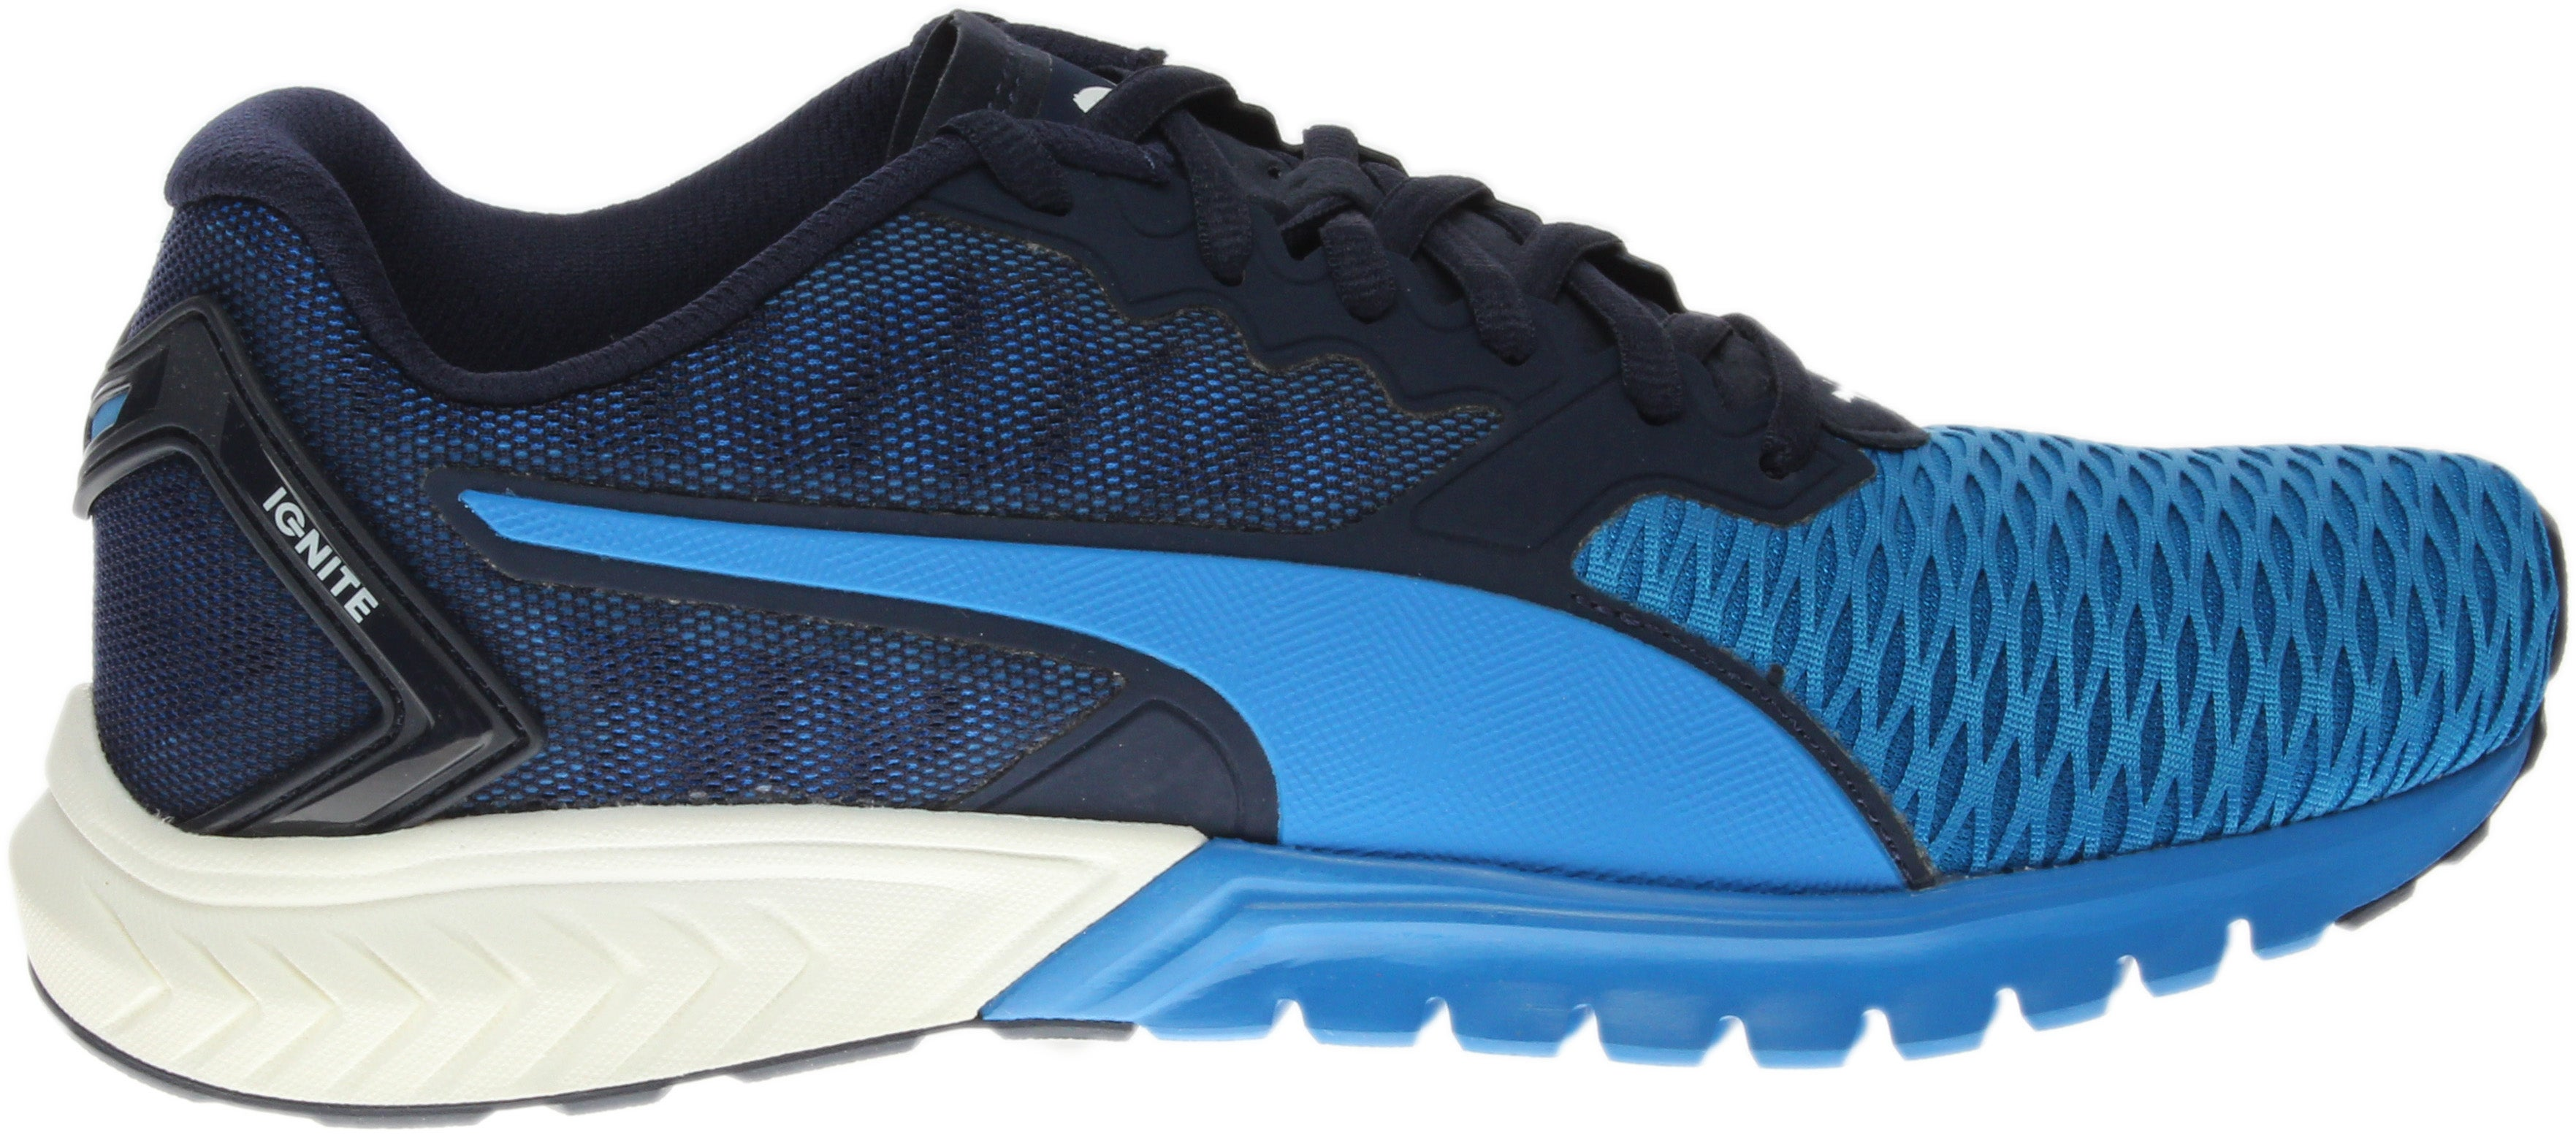 Puma Ignite Dual Blue - Mens  - Size